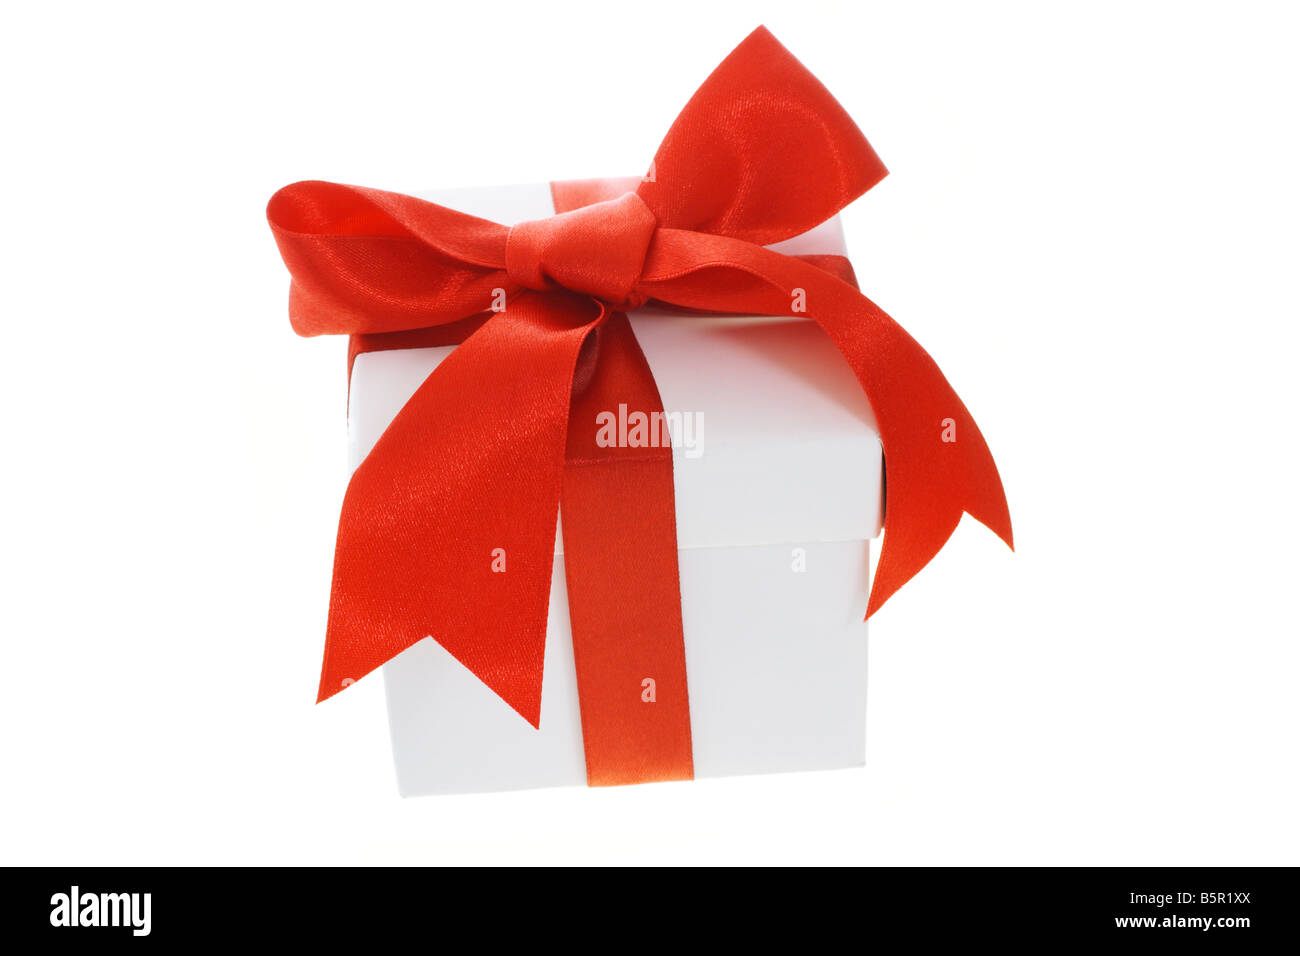 Gift box with red bow ribbon on white background Stock Photo